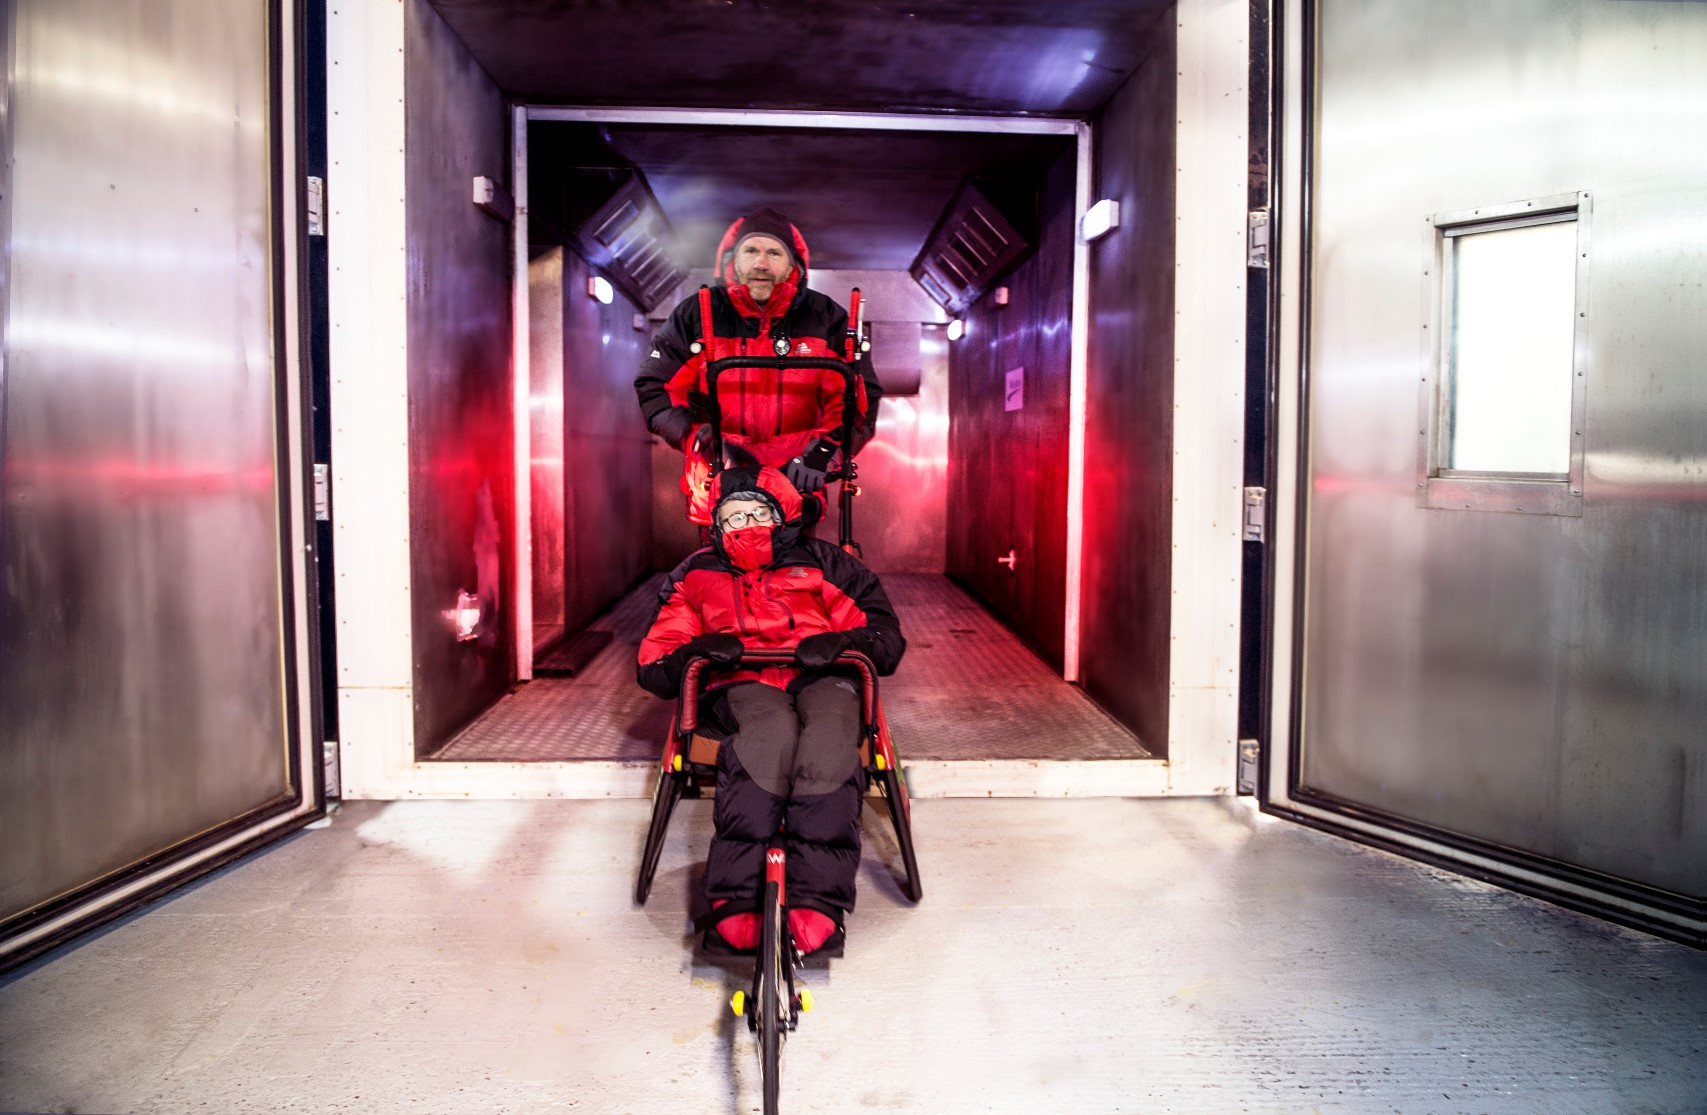 Stephan and Chloe Couture prepare for winter endurance events in Millbrook climatic chamber